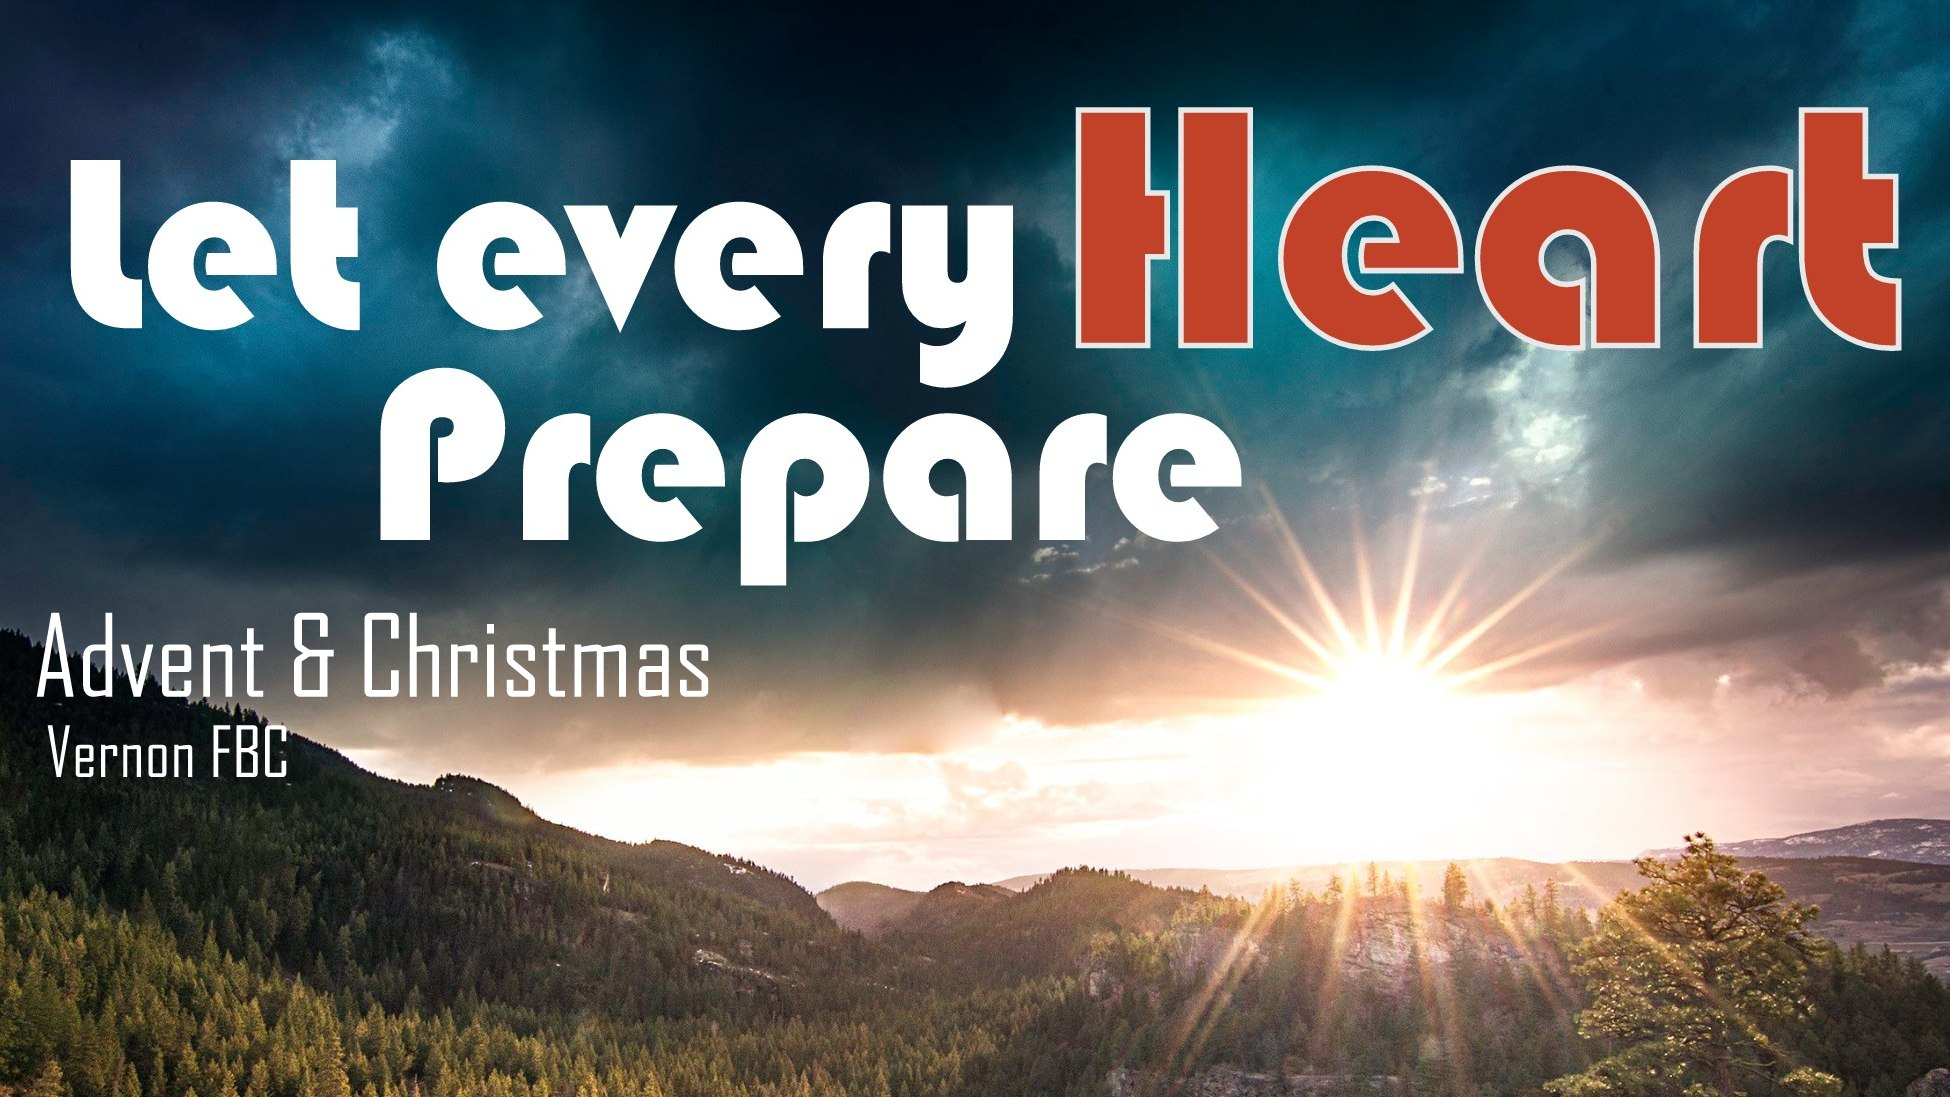 Over Advent this year we will seek to Prepare our Hearts… For Hope…For Peace…For Joy…For Love. Jesus has so much for us, we only have to follow His invitation.